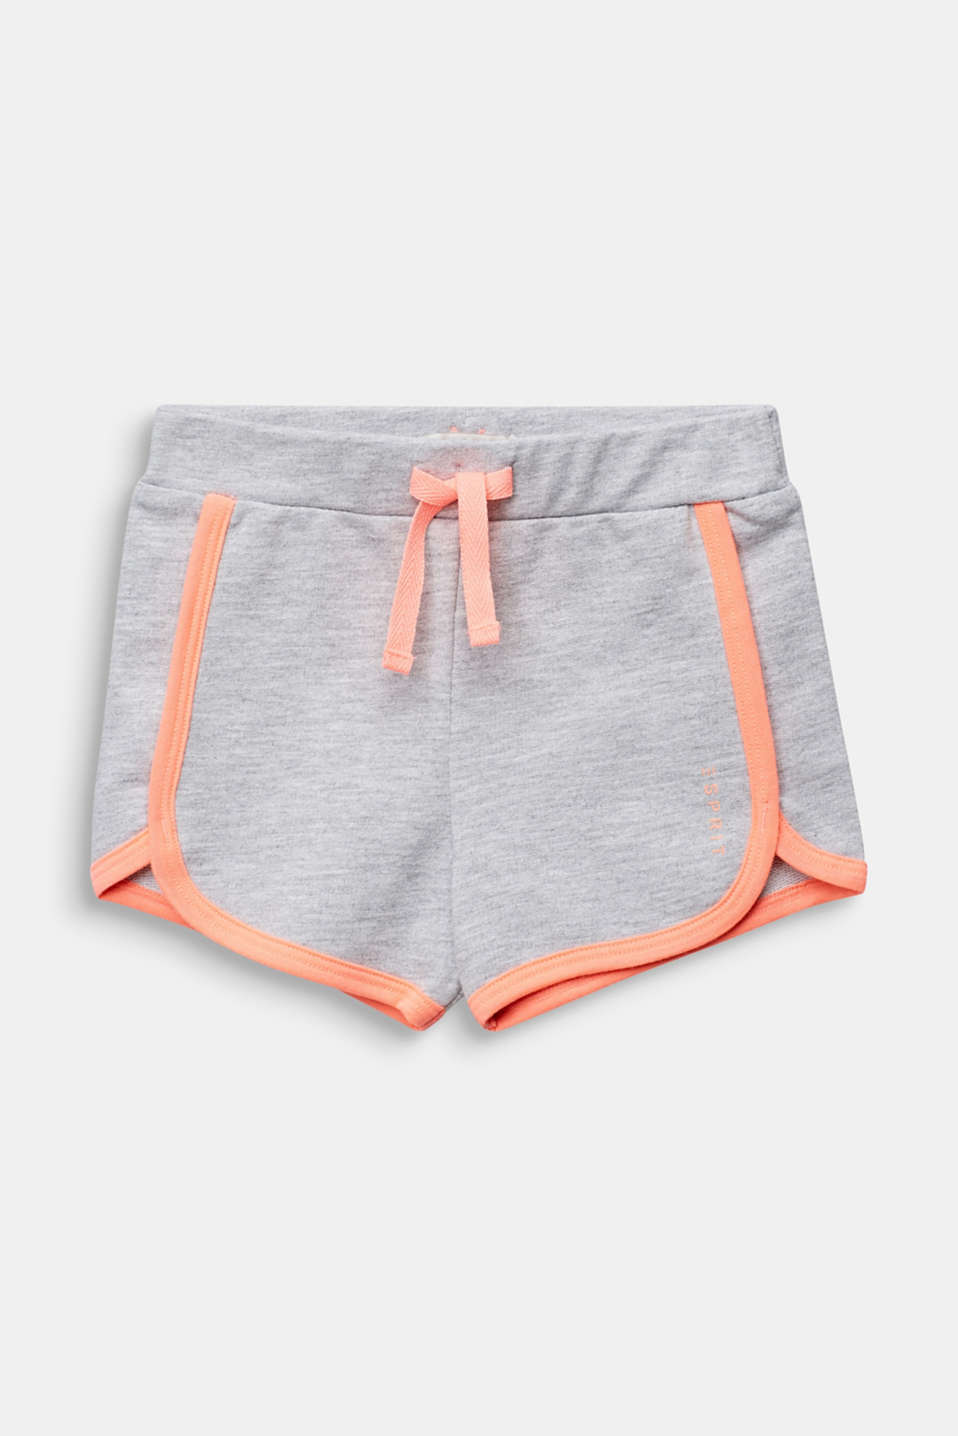 Esprit - Sweat shorts with NEON, 100% cotton